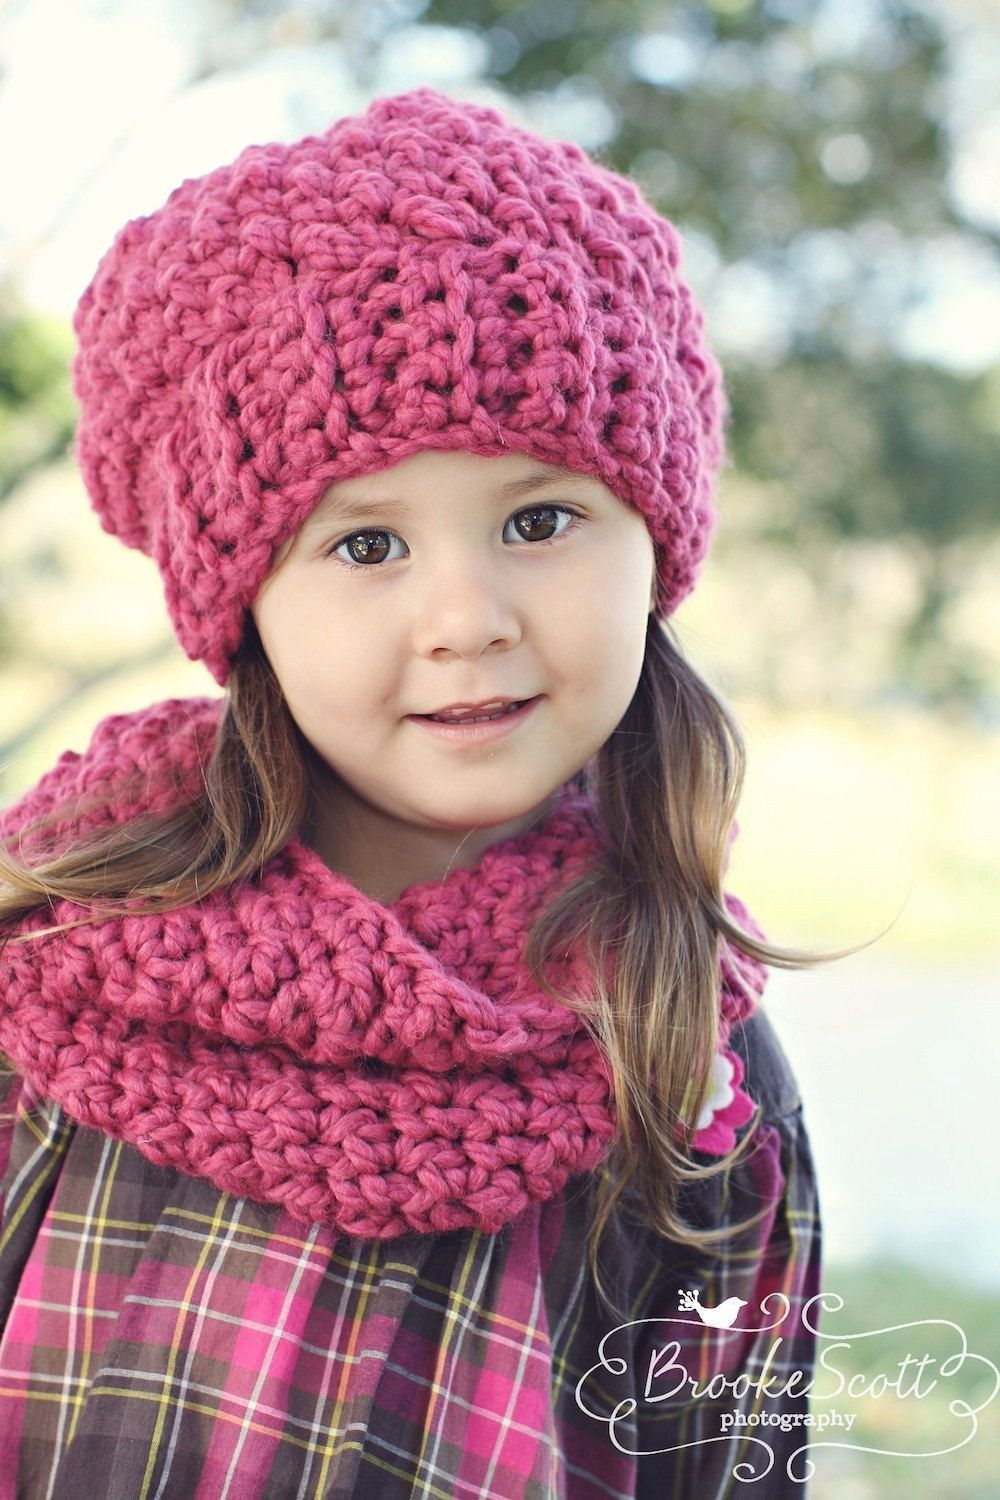 27+ Great Photo of Childrens Crochet Hat And Scarf Patterns #kidsmessyhats Childrens Crochet Hat And Scarf Patterns Kids Hat And Matching Scarf Knitting Pattern Free Knitting. Childrens Crochet Hat And Scarf Patterns Childrens Hat Scarf Knitting Pattern Crochet. Childrens Crochet Hat And Scarf Patterns Crochet Pattern Hood Cowl The Ginger On Storenvy. Childrens Crochet Hat And Scarf Patterns Messy Bun Hat Pattern Collection Red Heart. Childrens... #kidsmessyhats 27+ Great Photo of Childrens Croc #kidsmessyhats